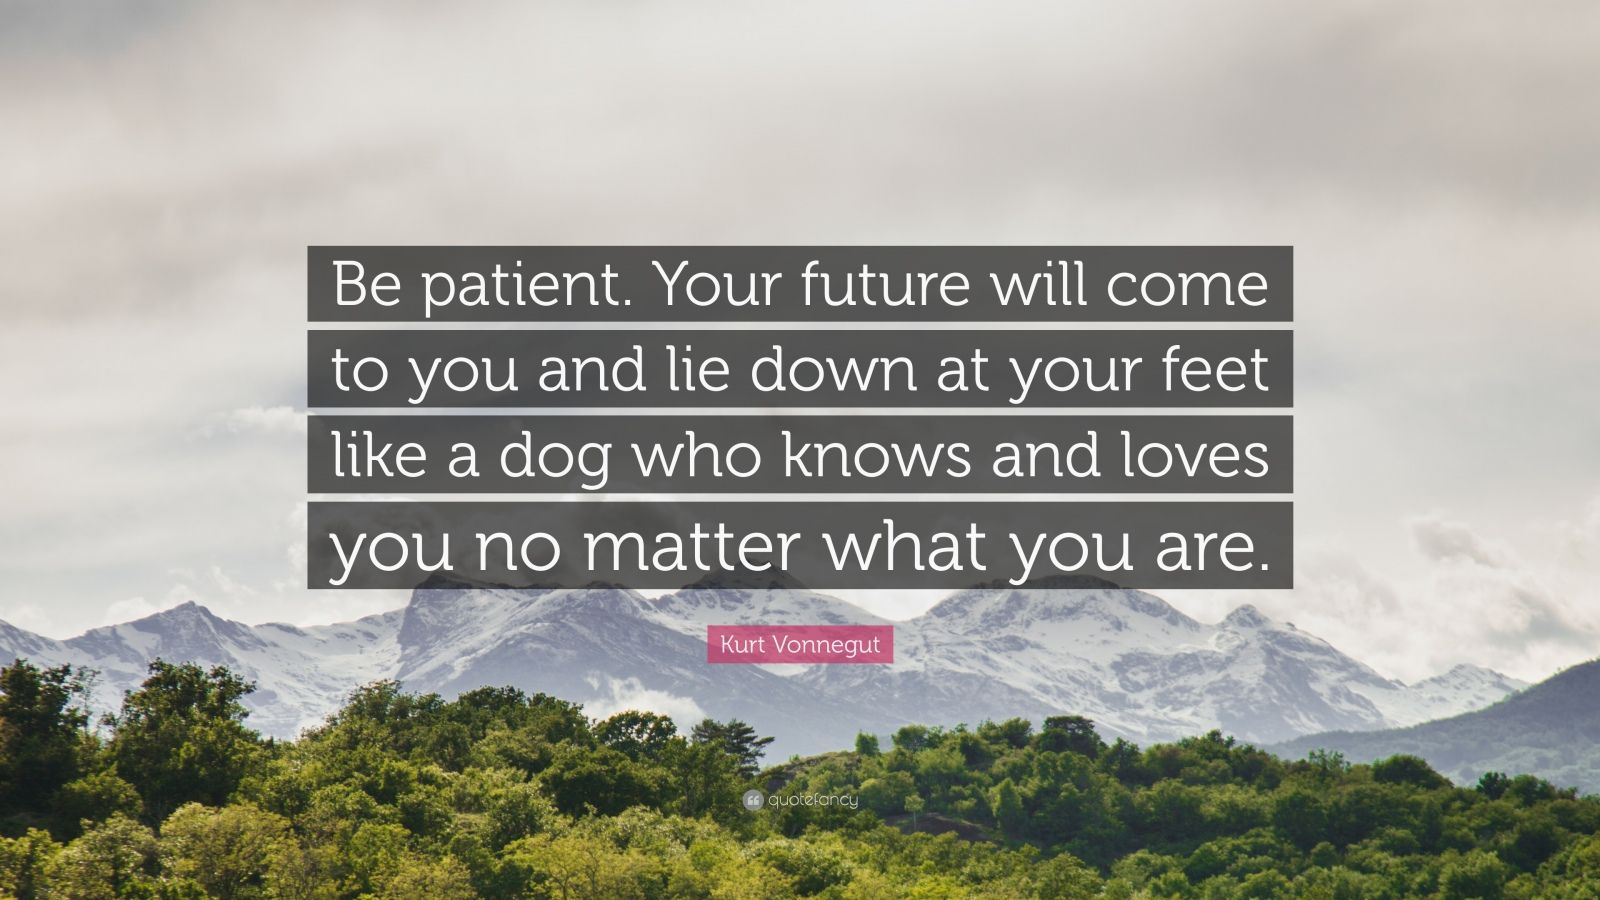 """Kurt Vonnegut Quote: """"Be patient. Your future will come to you and lie down at your feet like a dog who knows and loves you no matter what you are."""""""